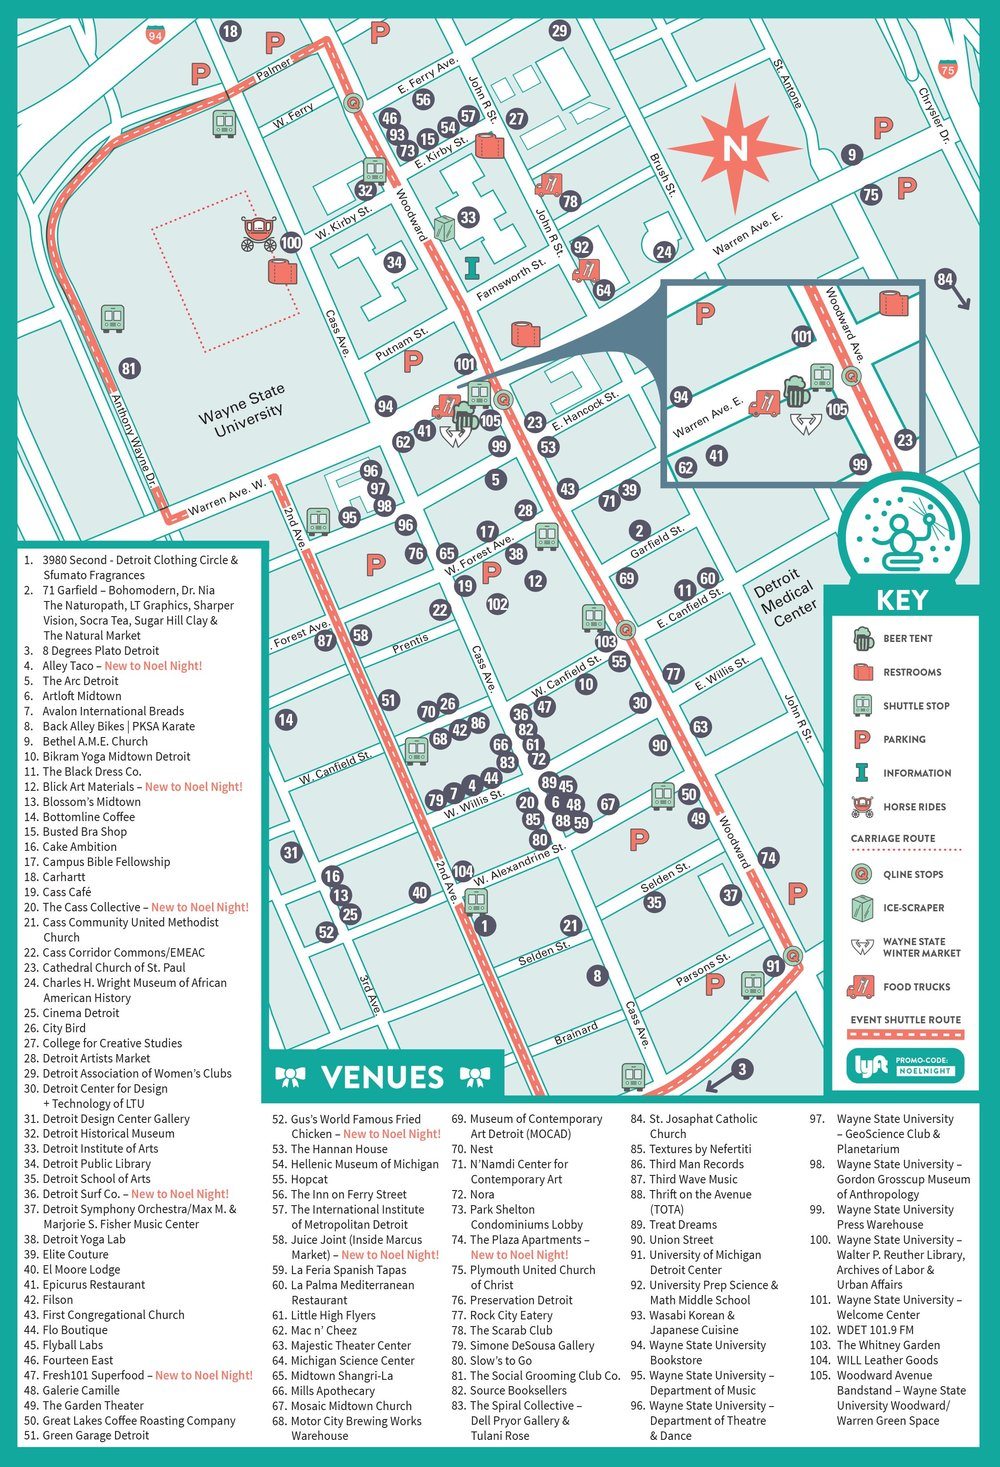 Click the image to download a PDF of the map